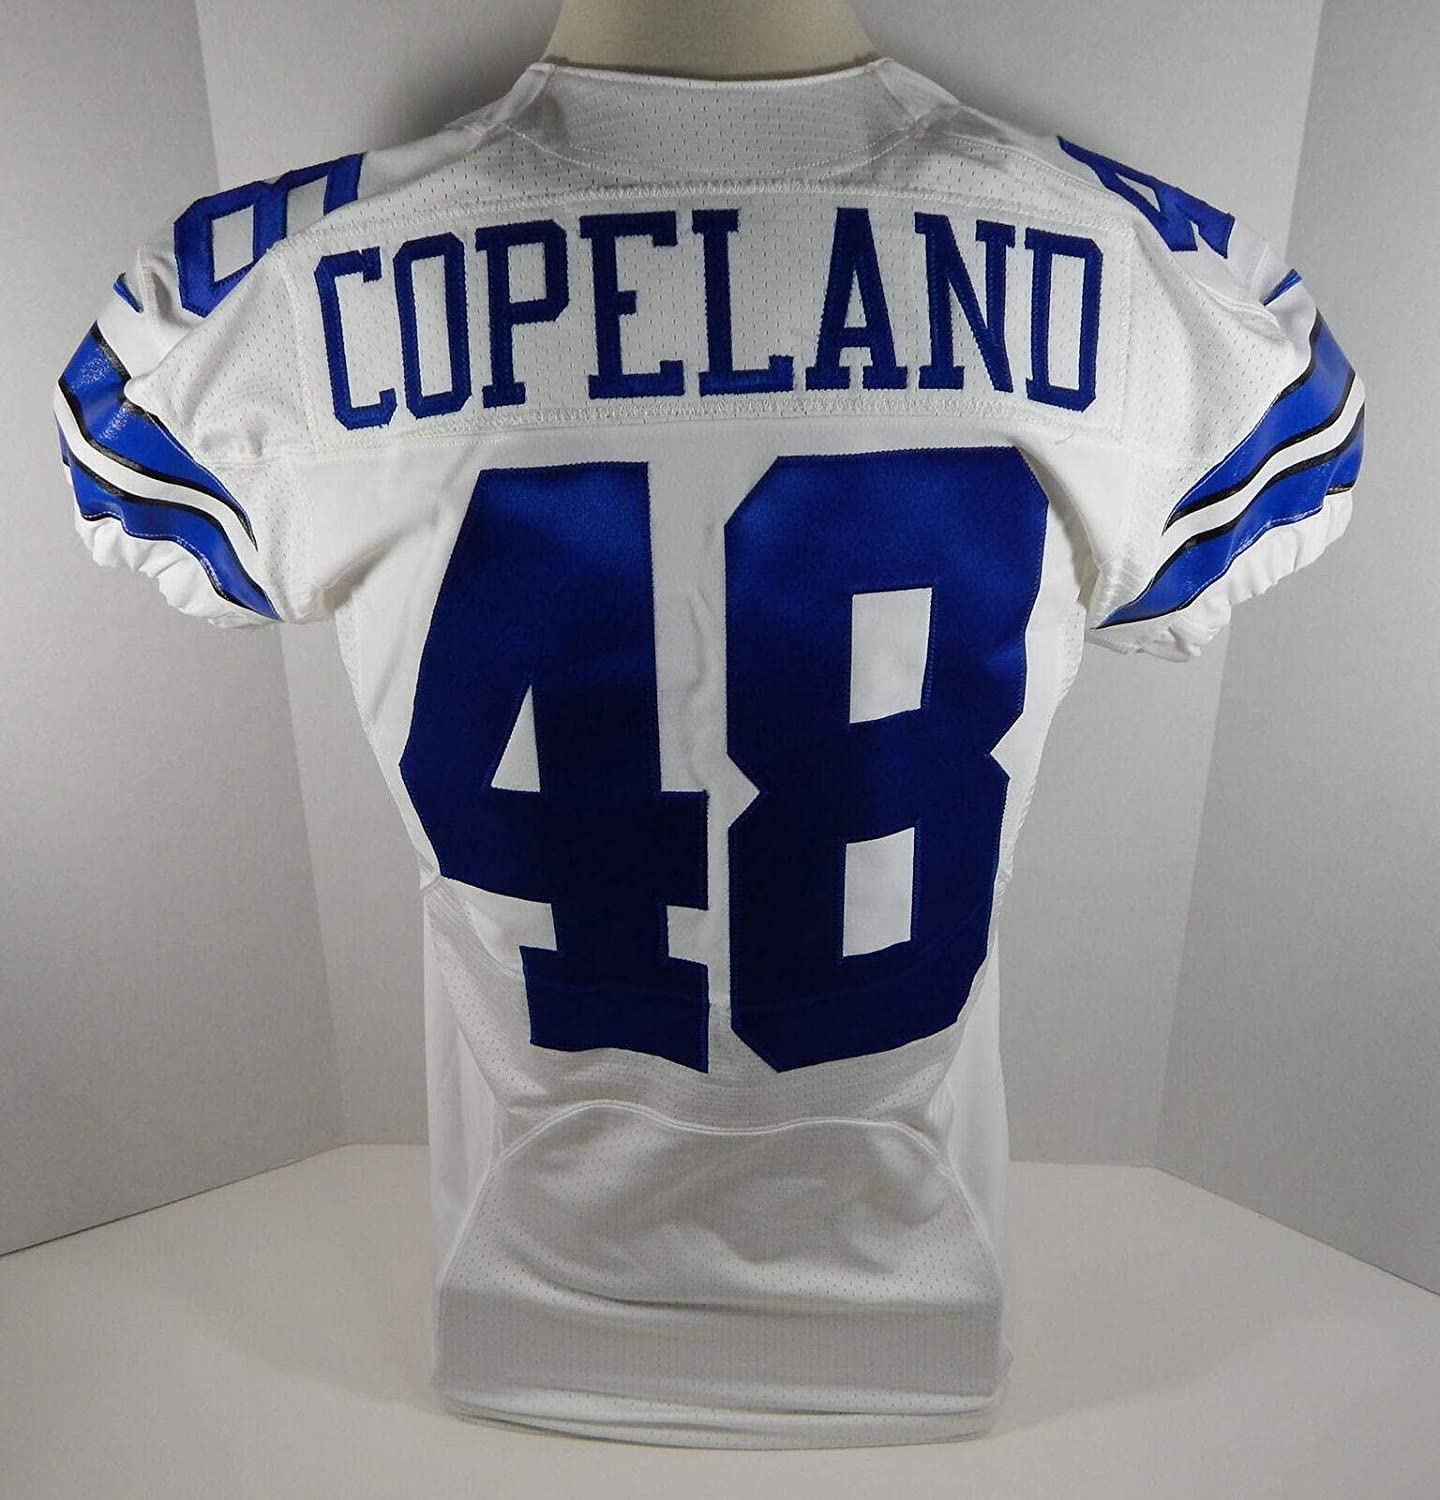 2013 Cowboys JC Copeland #48 Game Issued White Jersey - Unsigned NFL Game Used Jerseys